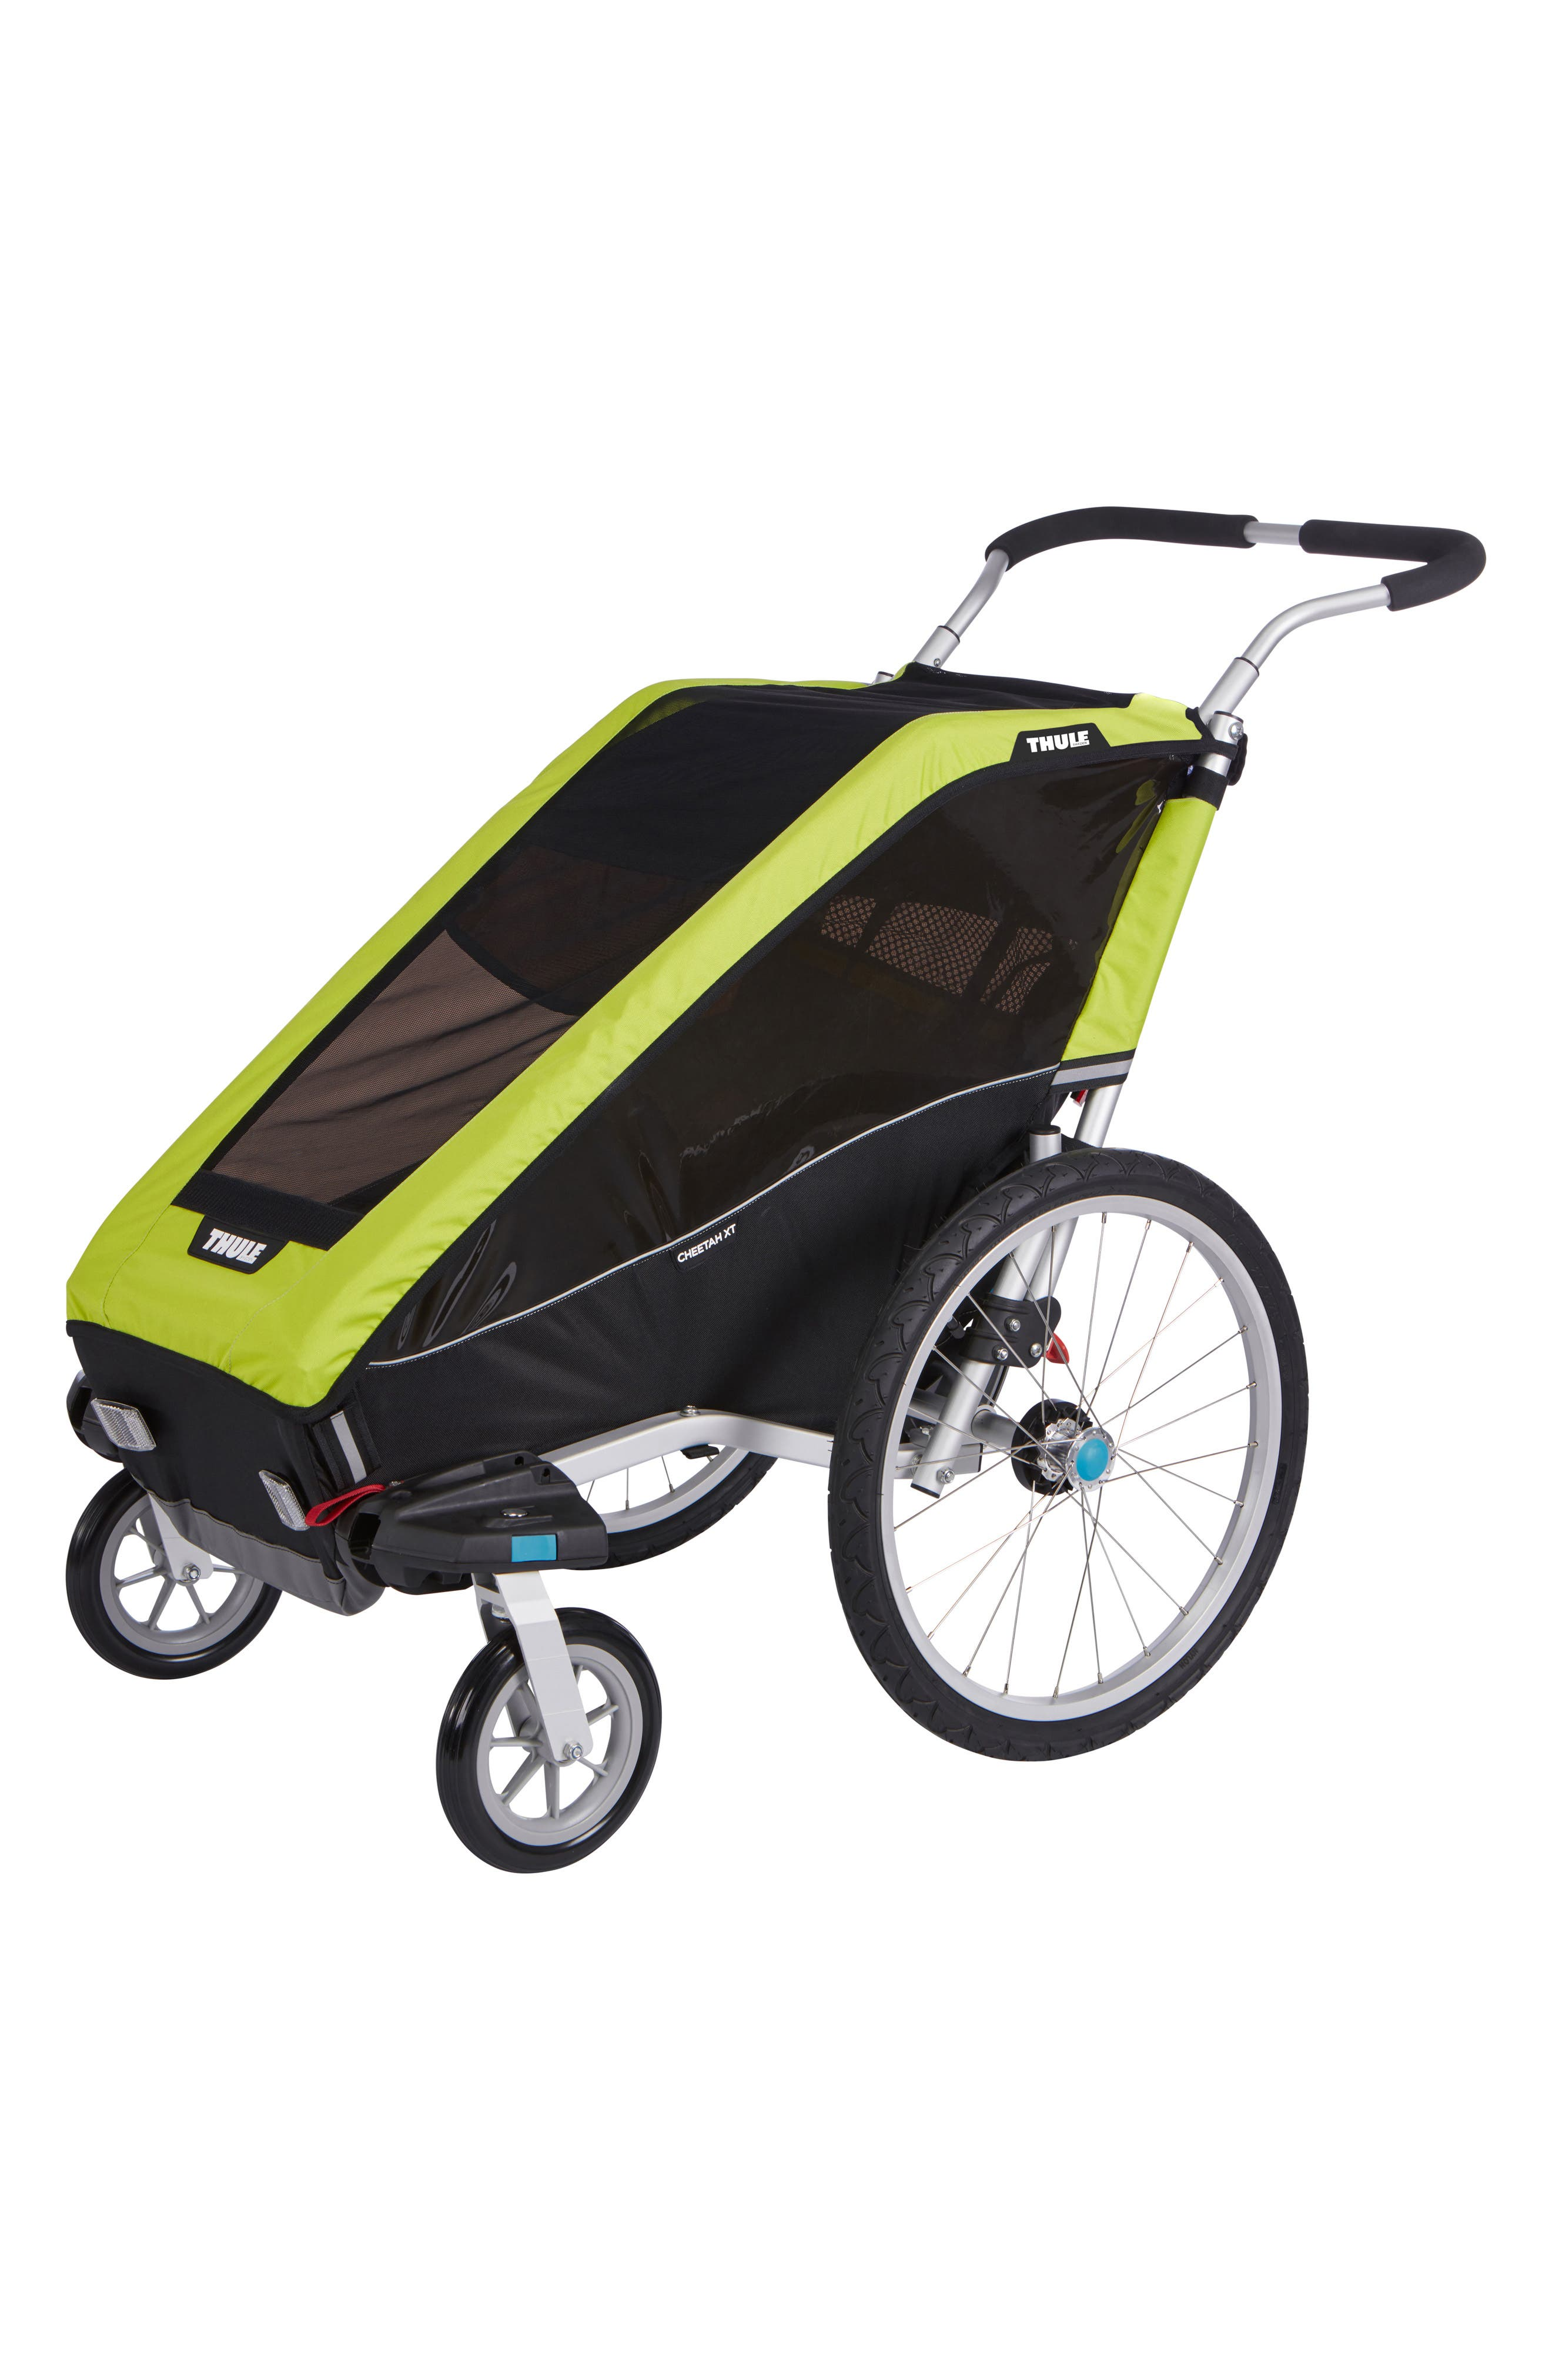 Thule Baby Gear & Essentials: Strollers, Diaper Bags & Toys | Nordstrom